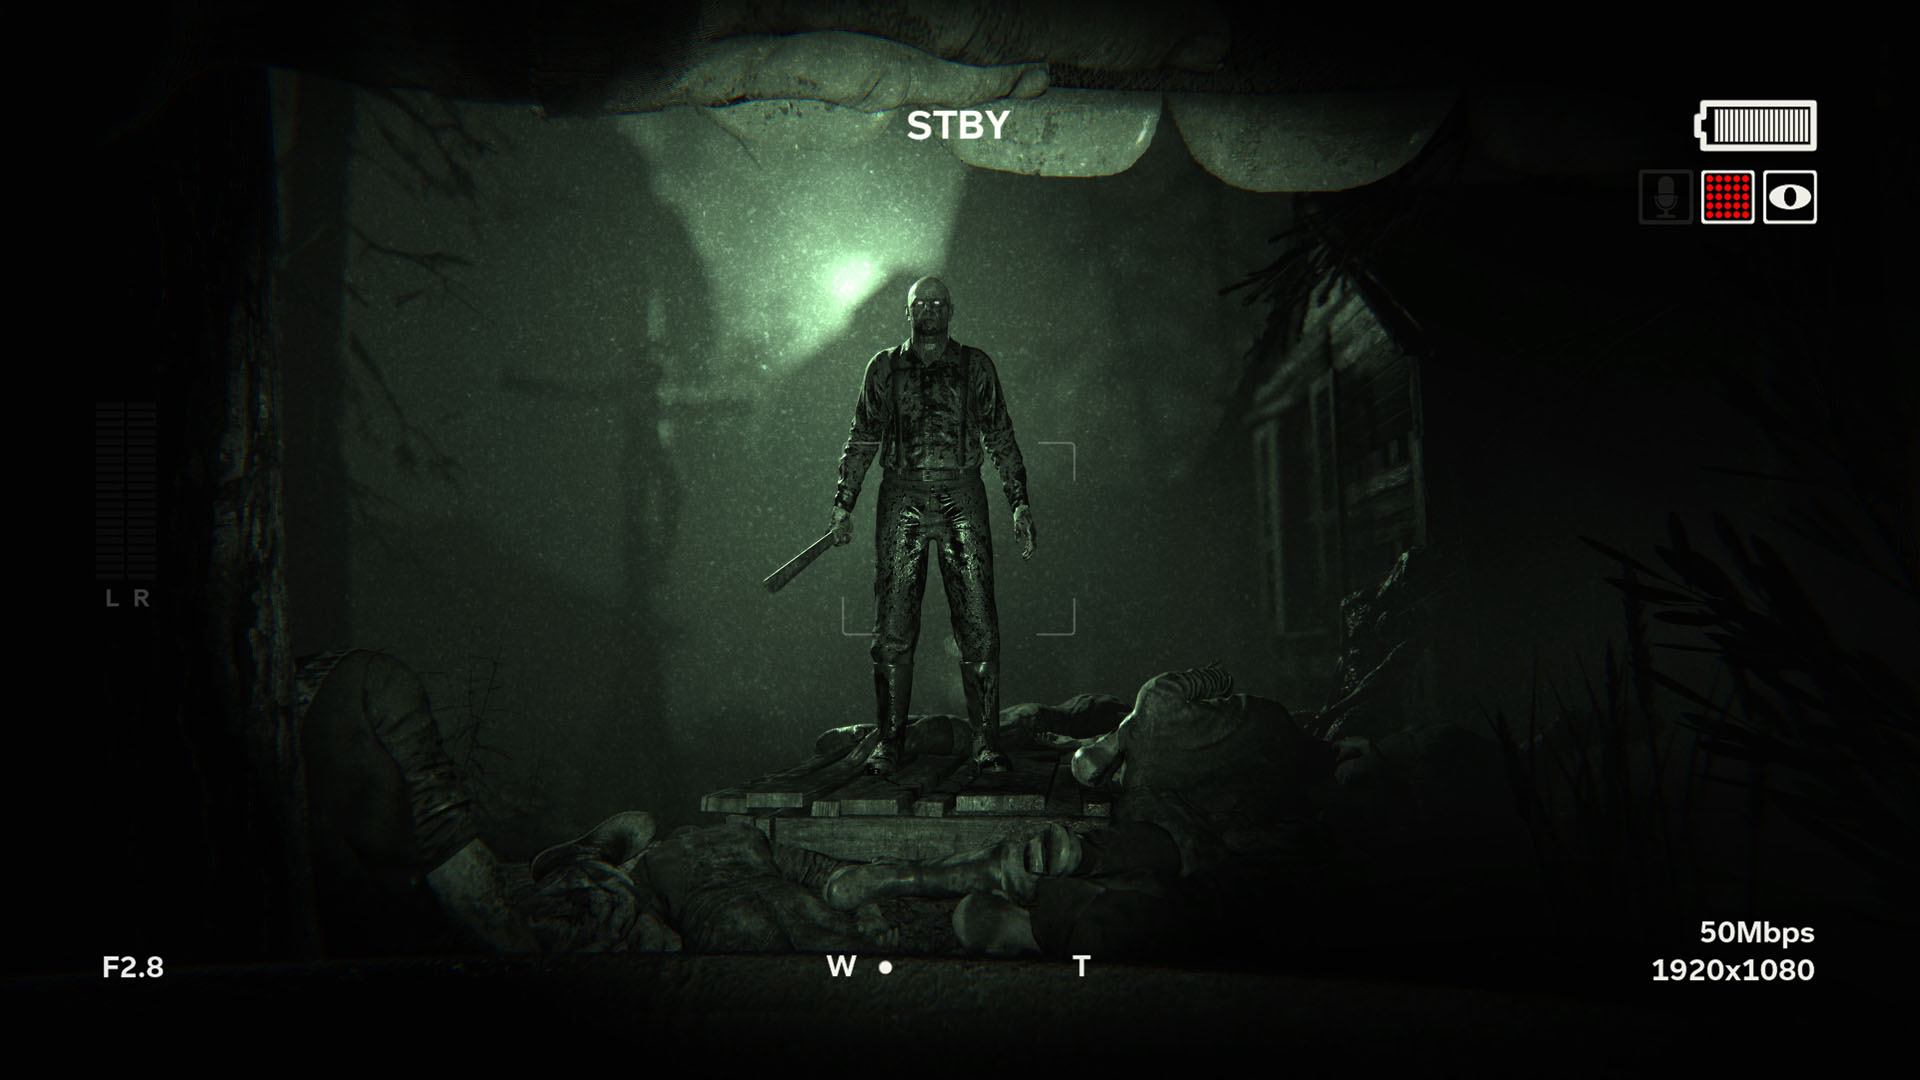 Red Barrels is shaking up the Outlast formula for its next game screenshot